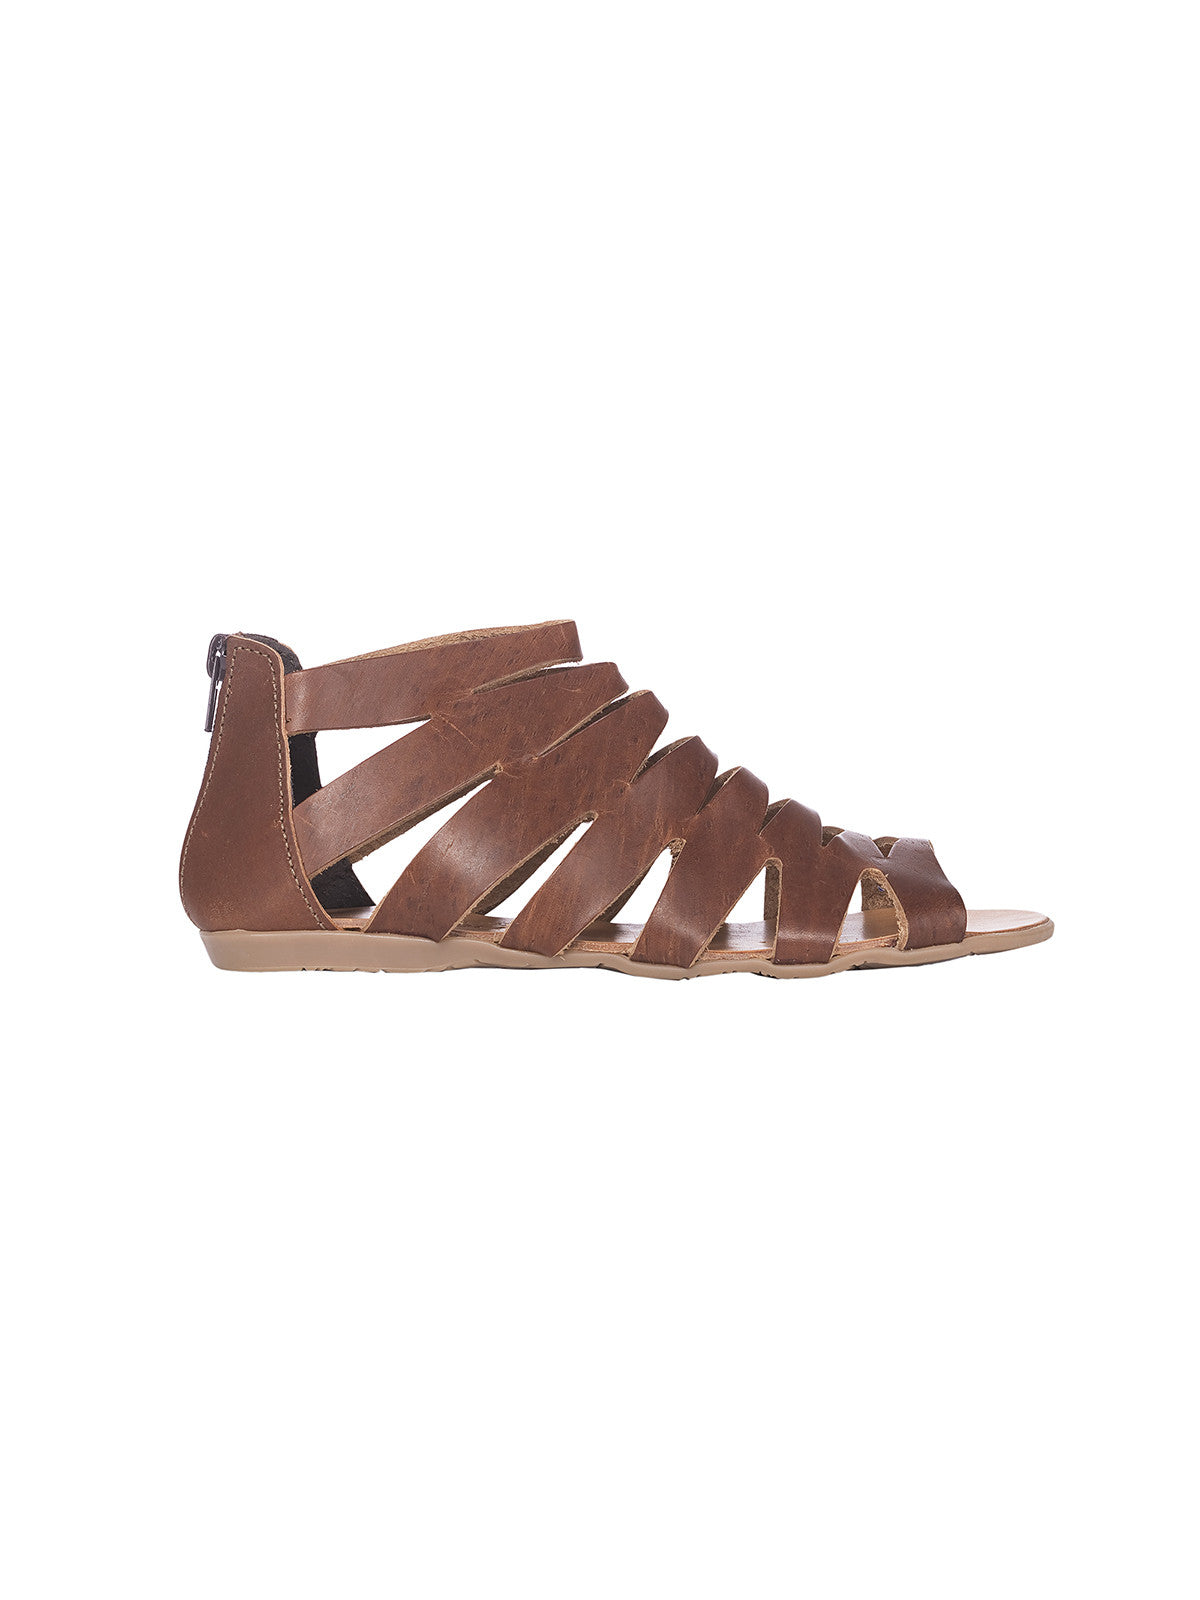 Ambrosia Greek Leather Sandals